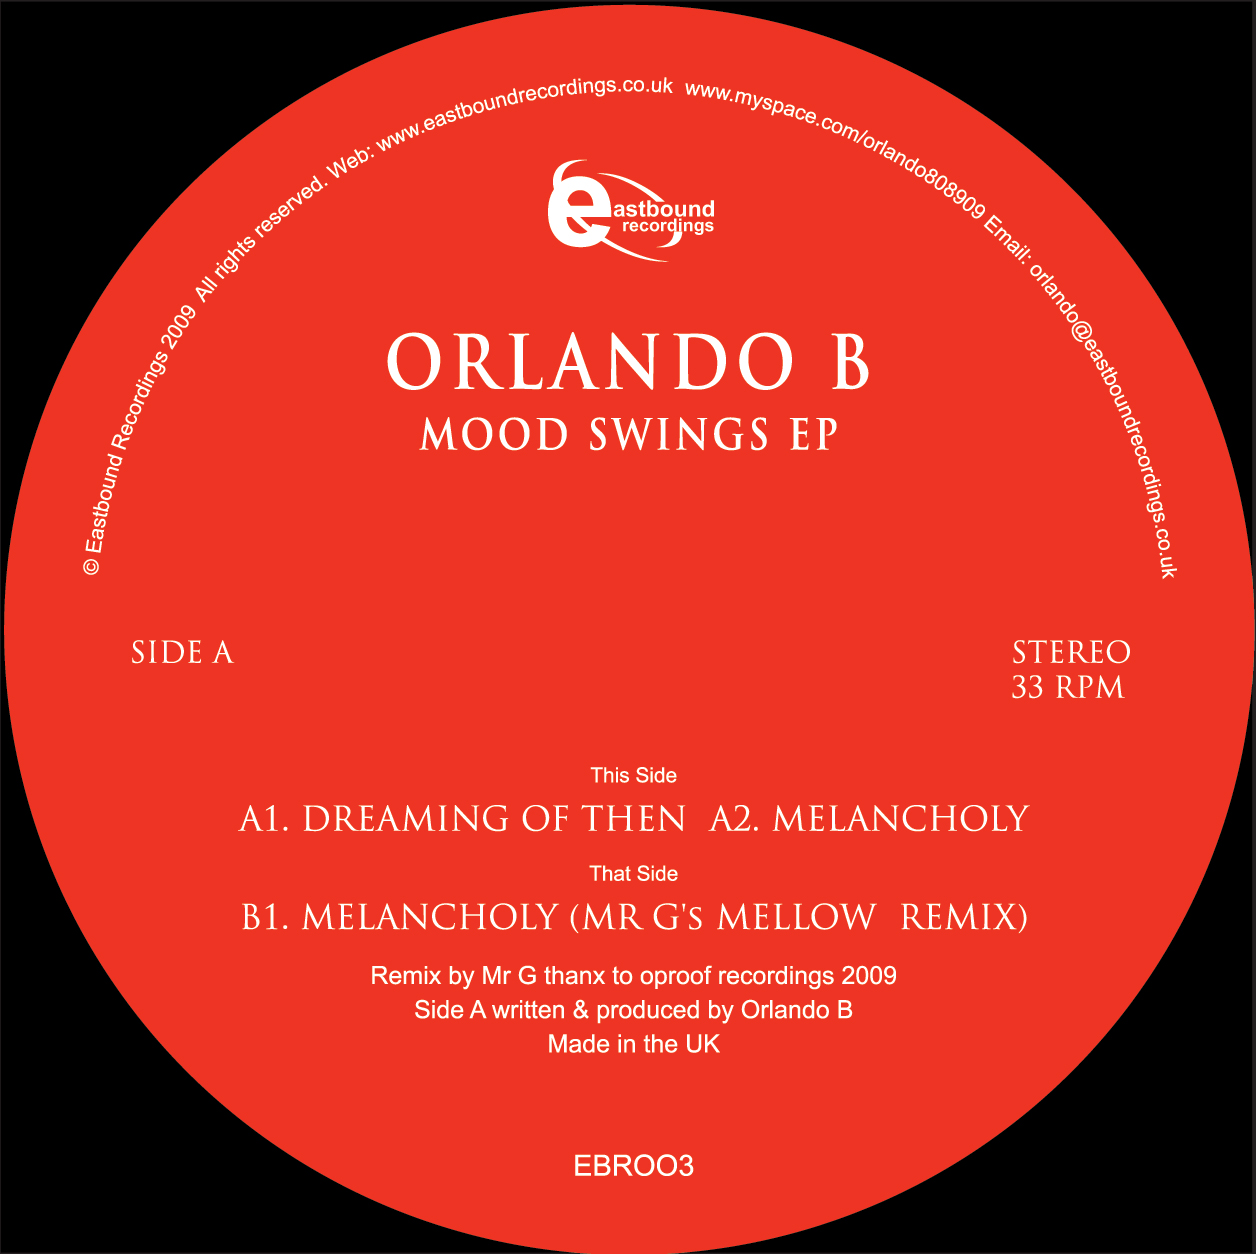 Orlando B - Mood Swings EP